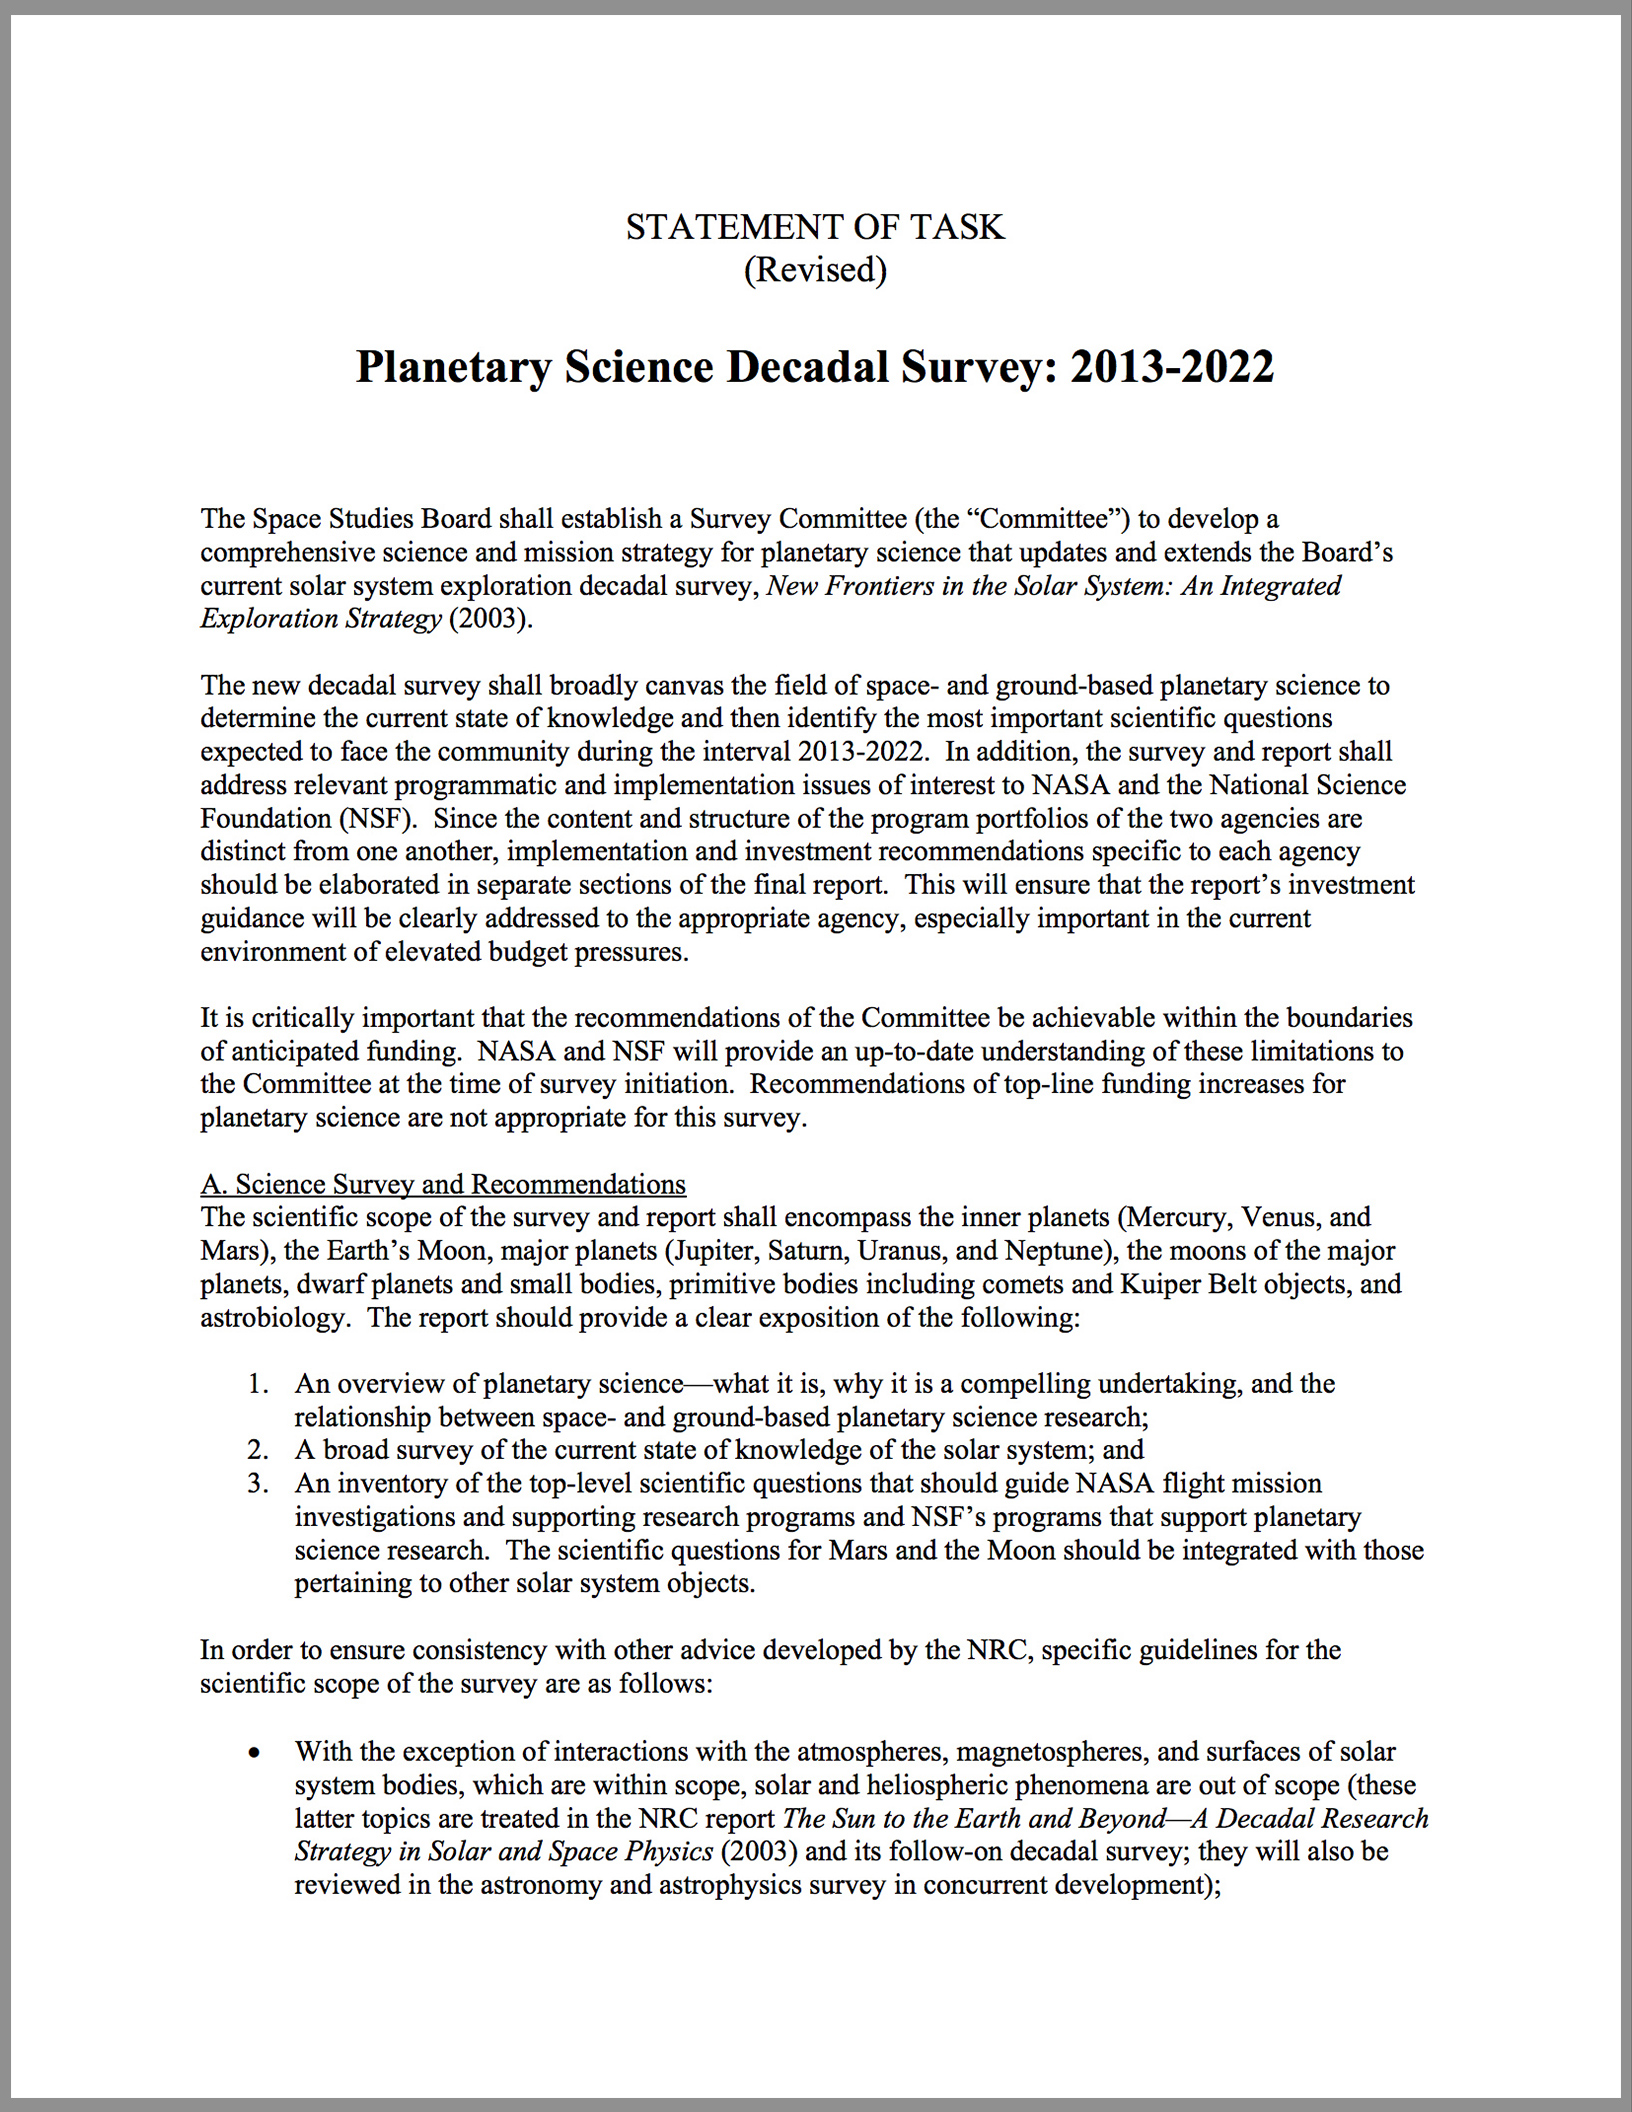 Planetary Science Decadal Survey: 2013-2022